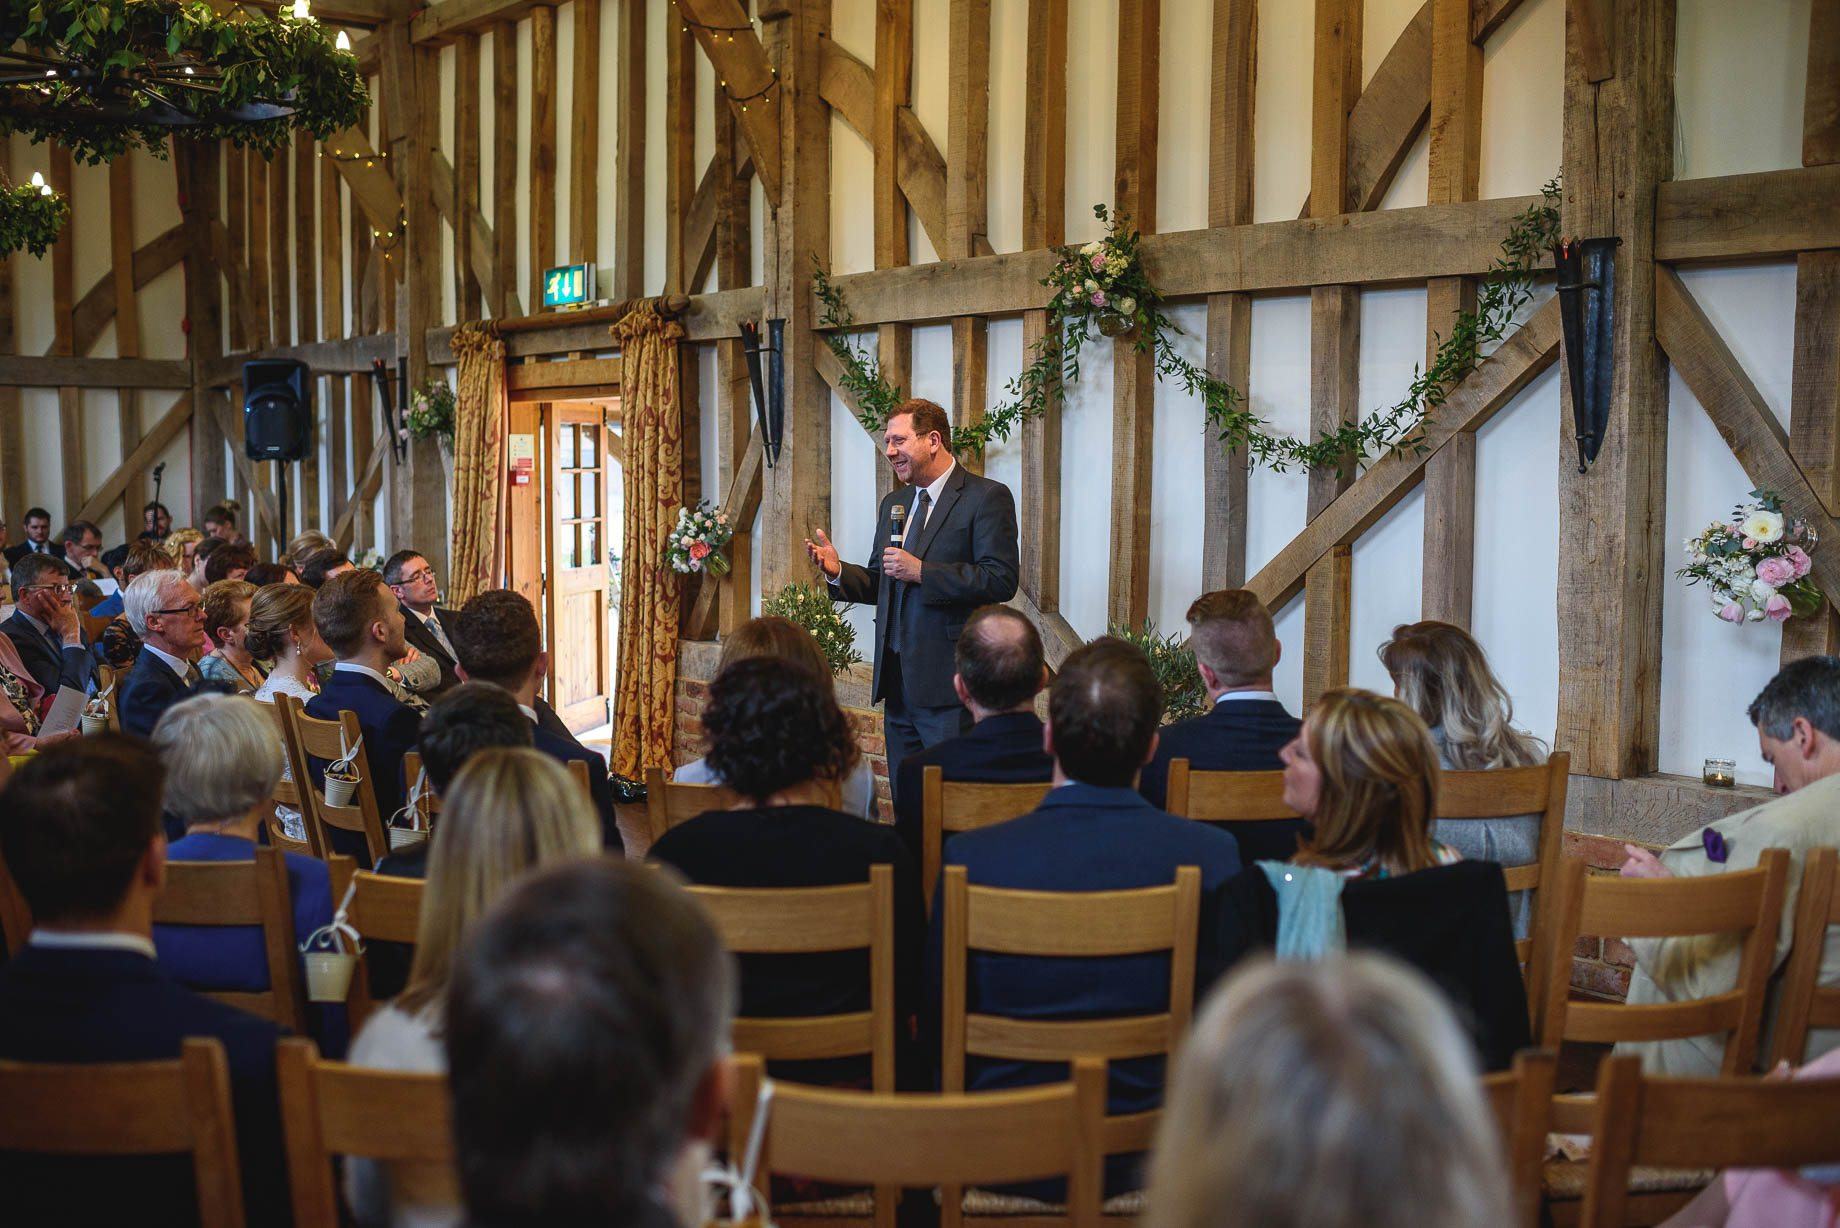 Surrey Wedding Photography by Guy Collier - Becca and James (53 of 145)